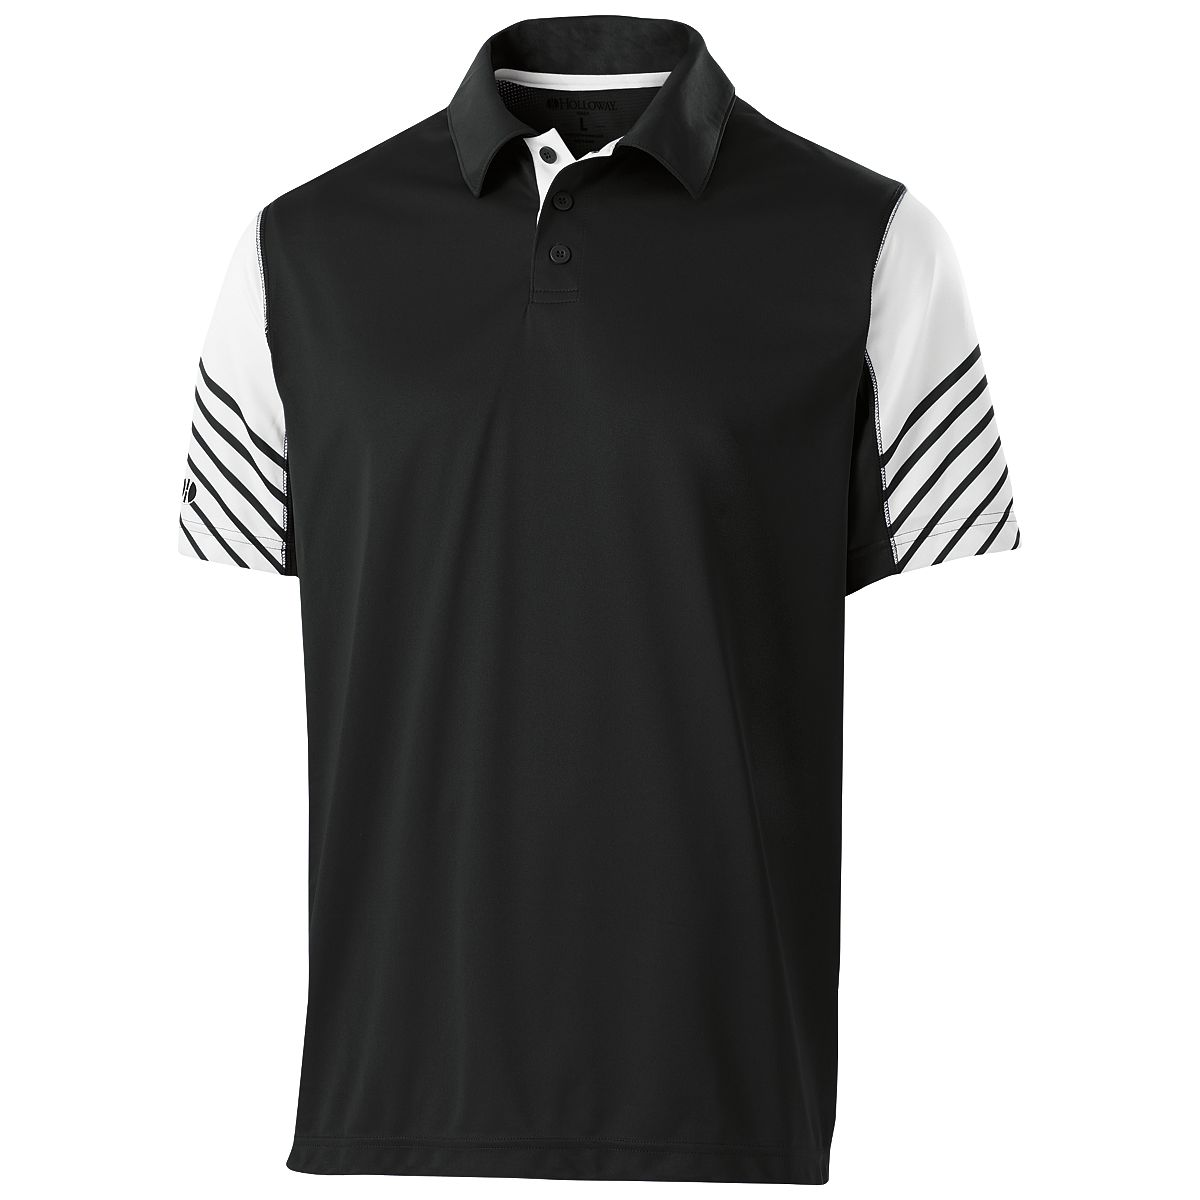 Holloway Arc Polo Blk/Whi S - image 1 of 1